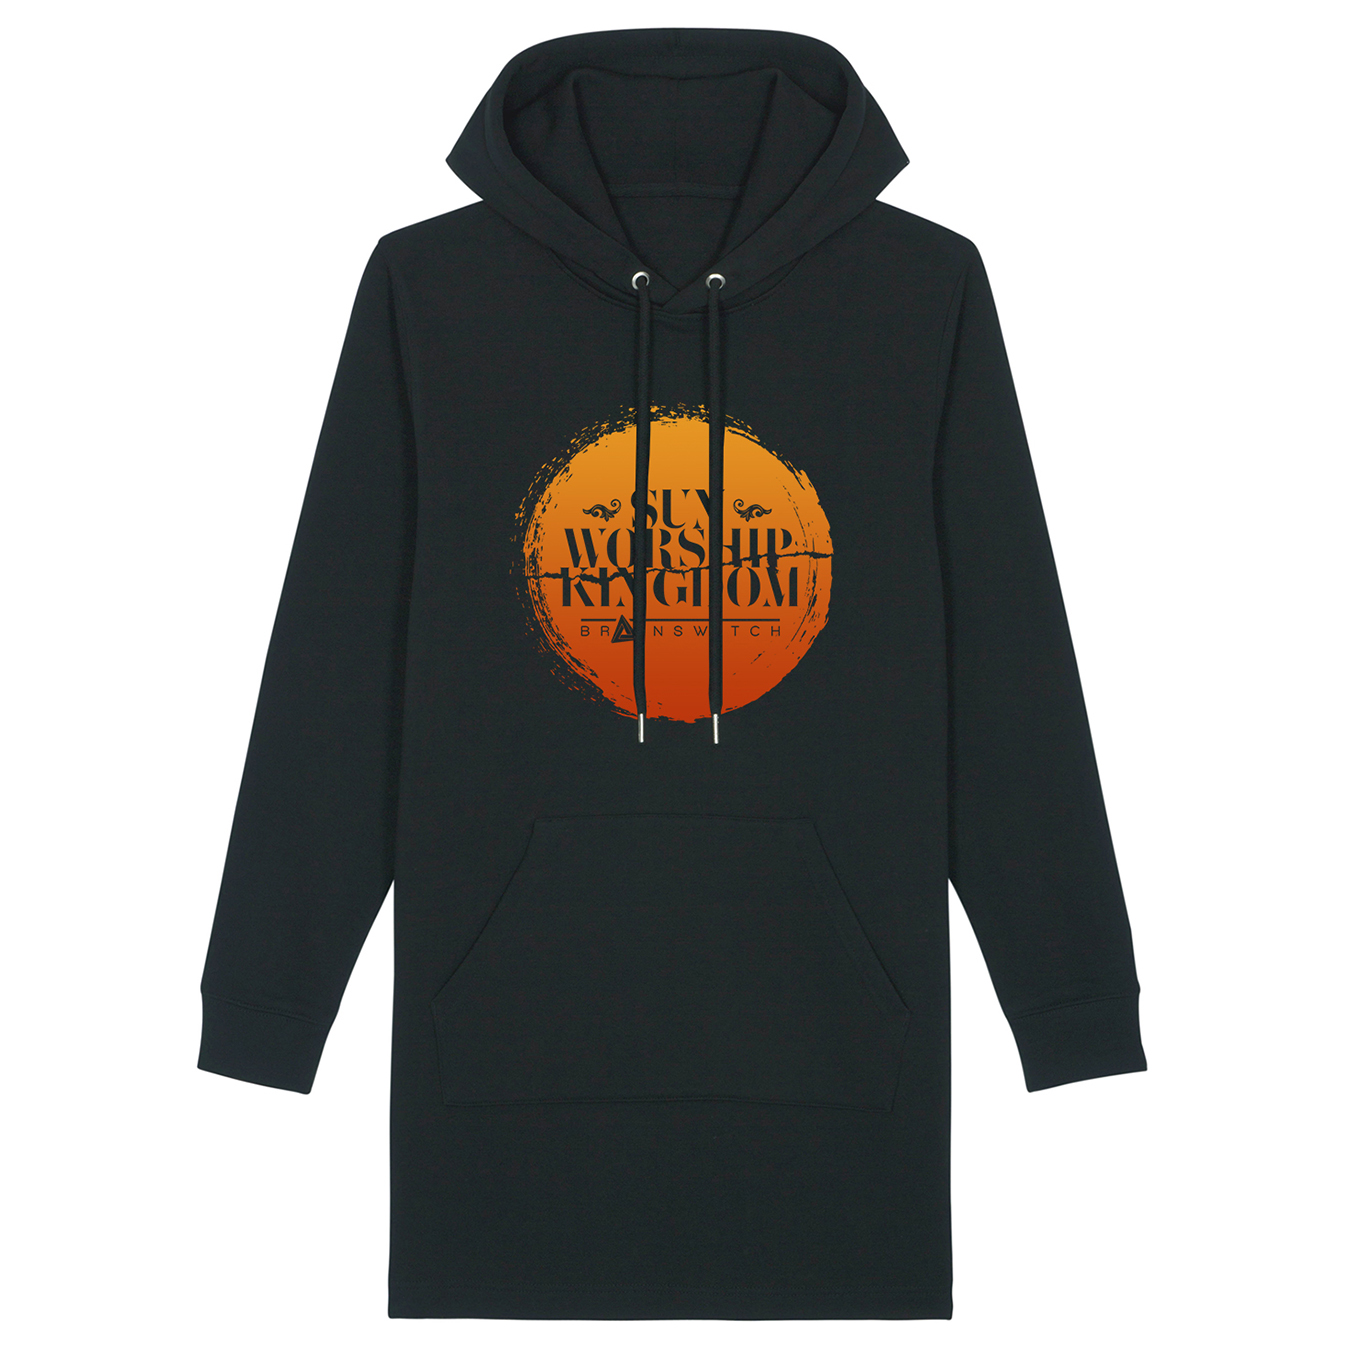 BRAINSWITCH - Sun Worship Kingdom - Hoodie Dress